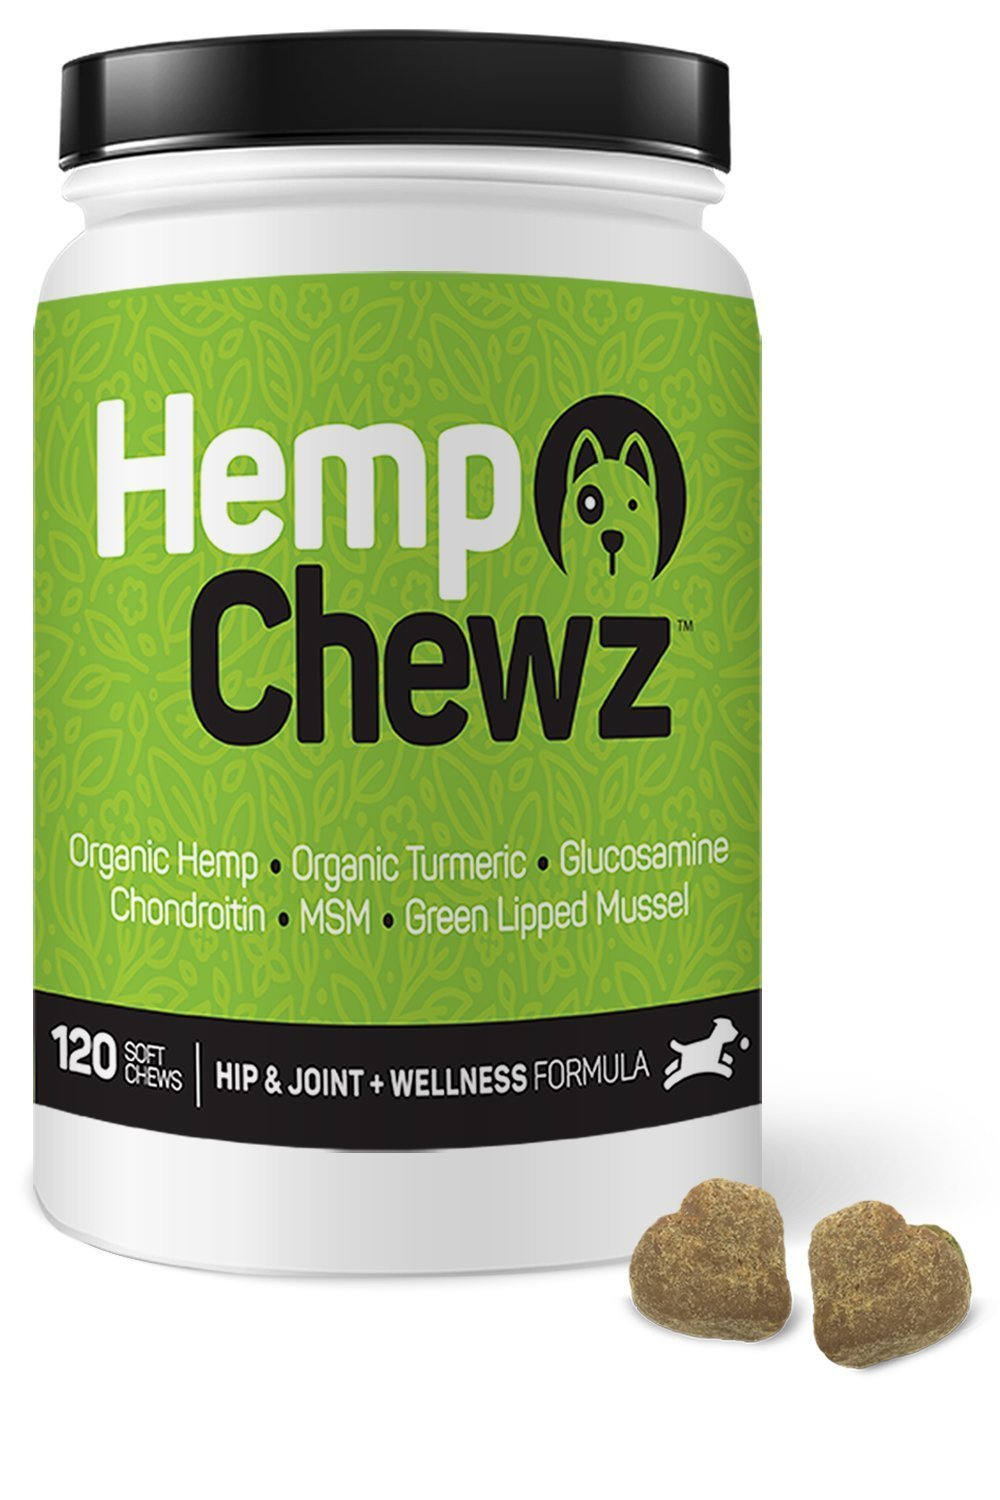 Hemp Chewz Best Hip & Joint Supplement for Dogs: Veterinarian Recommended Hemp Oil, Turmeric, Glucosamine, Chondroitin, MSM + Green Lipped Mussel for Arthritis Pain Relief & Mobility - 120 Soft Chews by Hemp Chewz